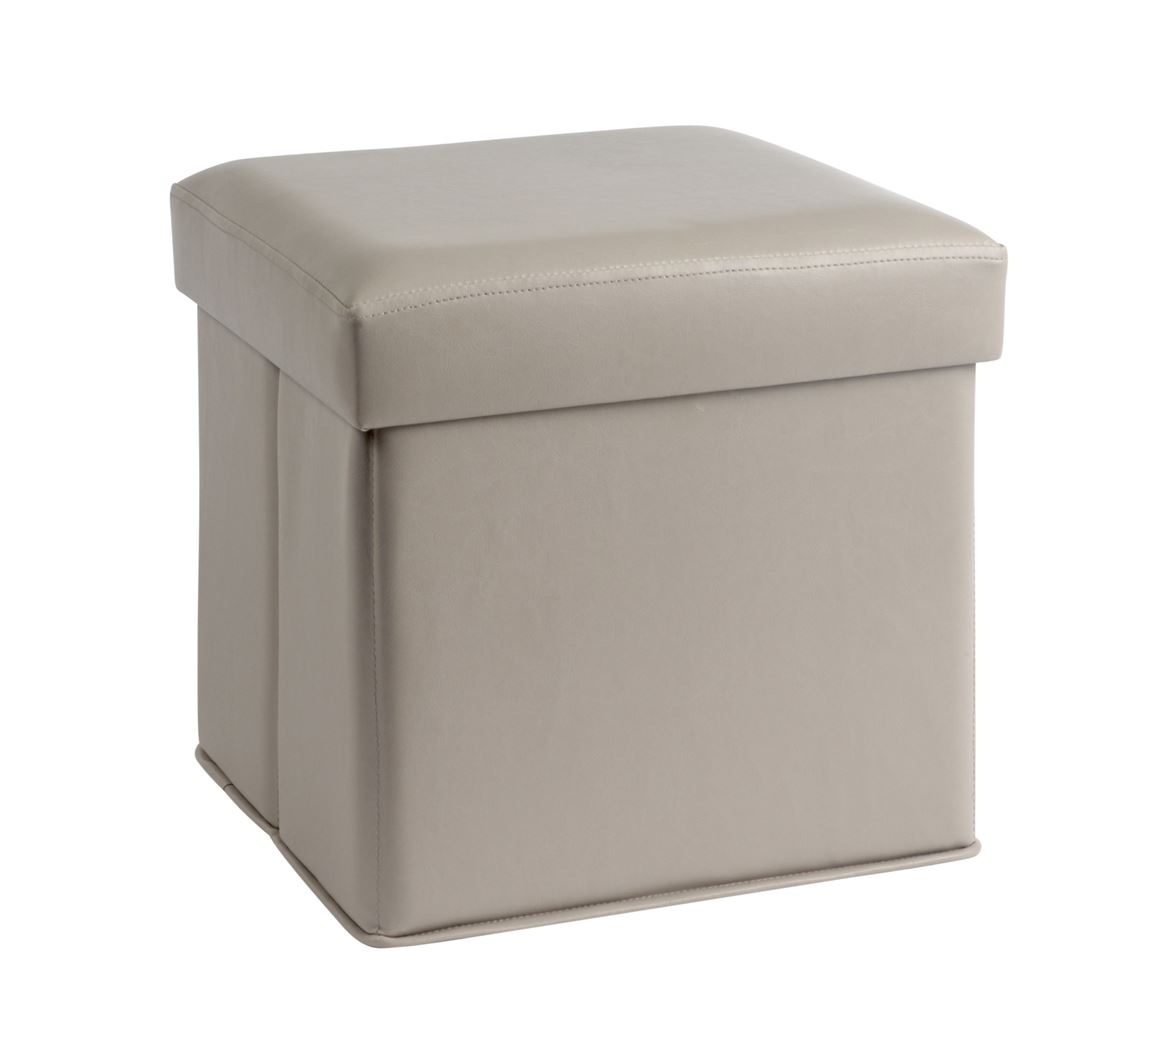 storage pouf de rangement taupe h 38 x larg 38 x p 38 cm sp cialiste depuis 40 ans d j casa. Black Bedroom Furniture Sets. Home Design Ideas